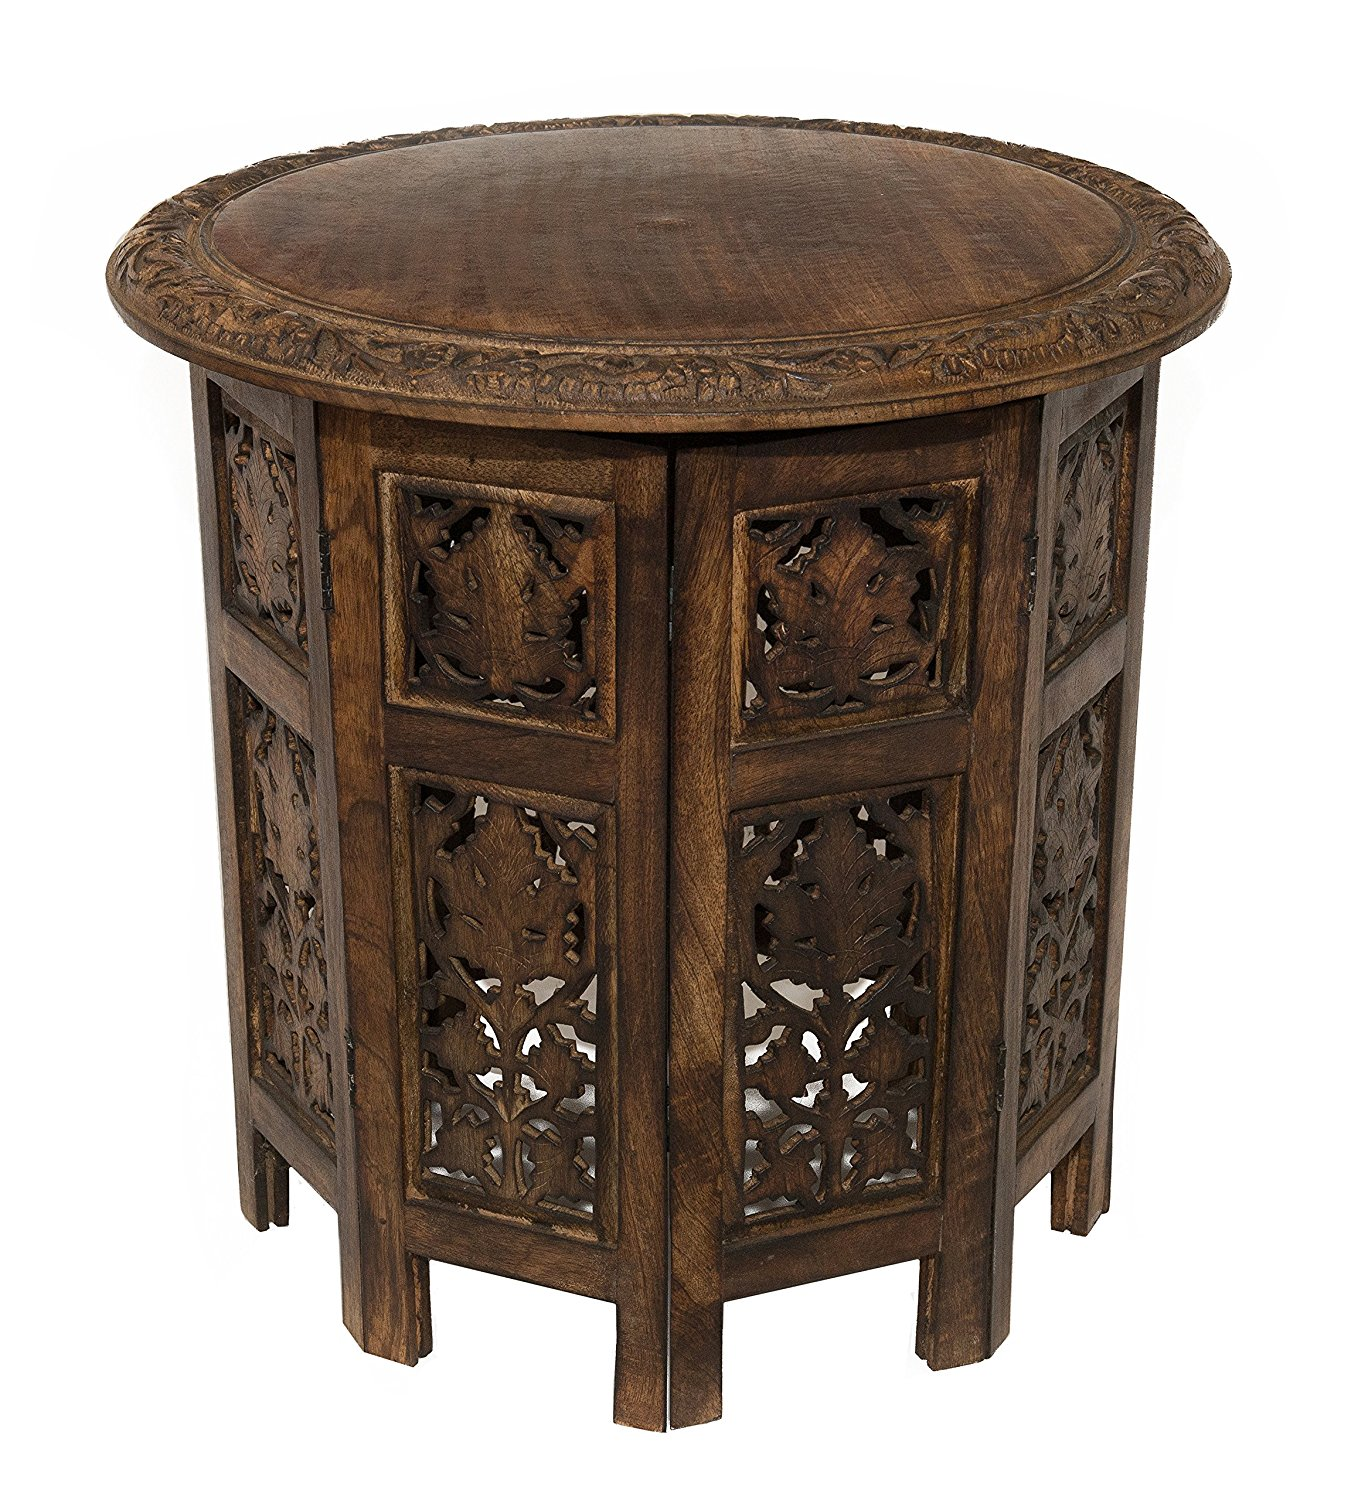 remarkable small round wood accent table square oak tripod twist and bengal five mango below metal wooden twisted lani avani drum oval manor pressed tables unfinished faux solid